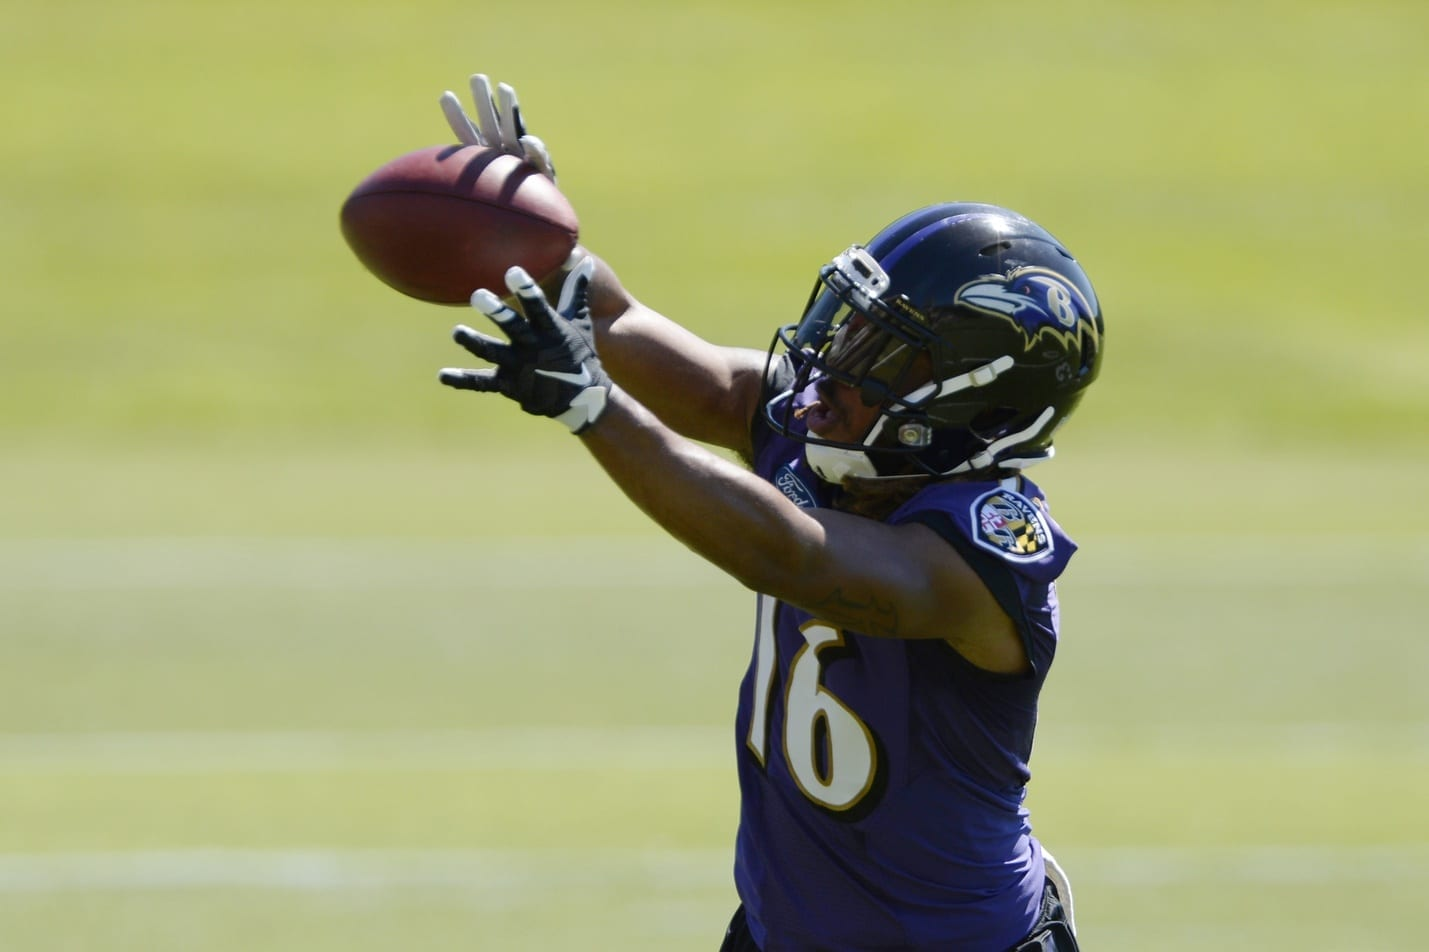 best undrafted nfl players nfl vegas betting odds